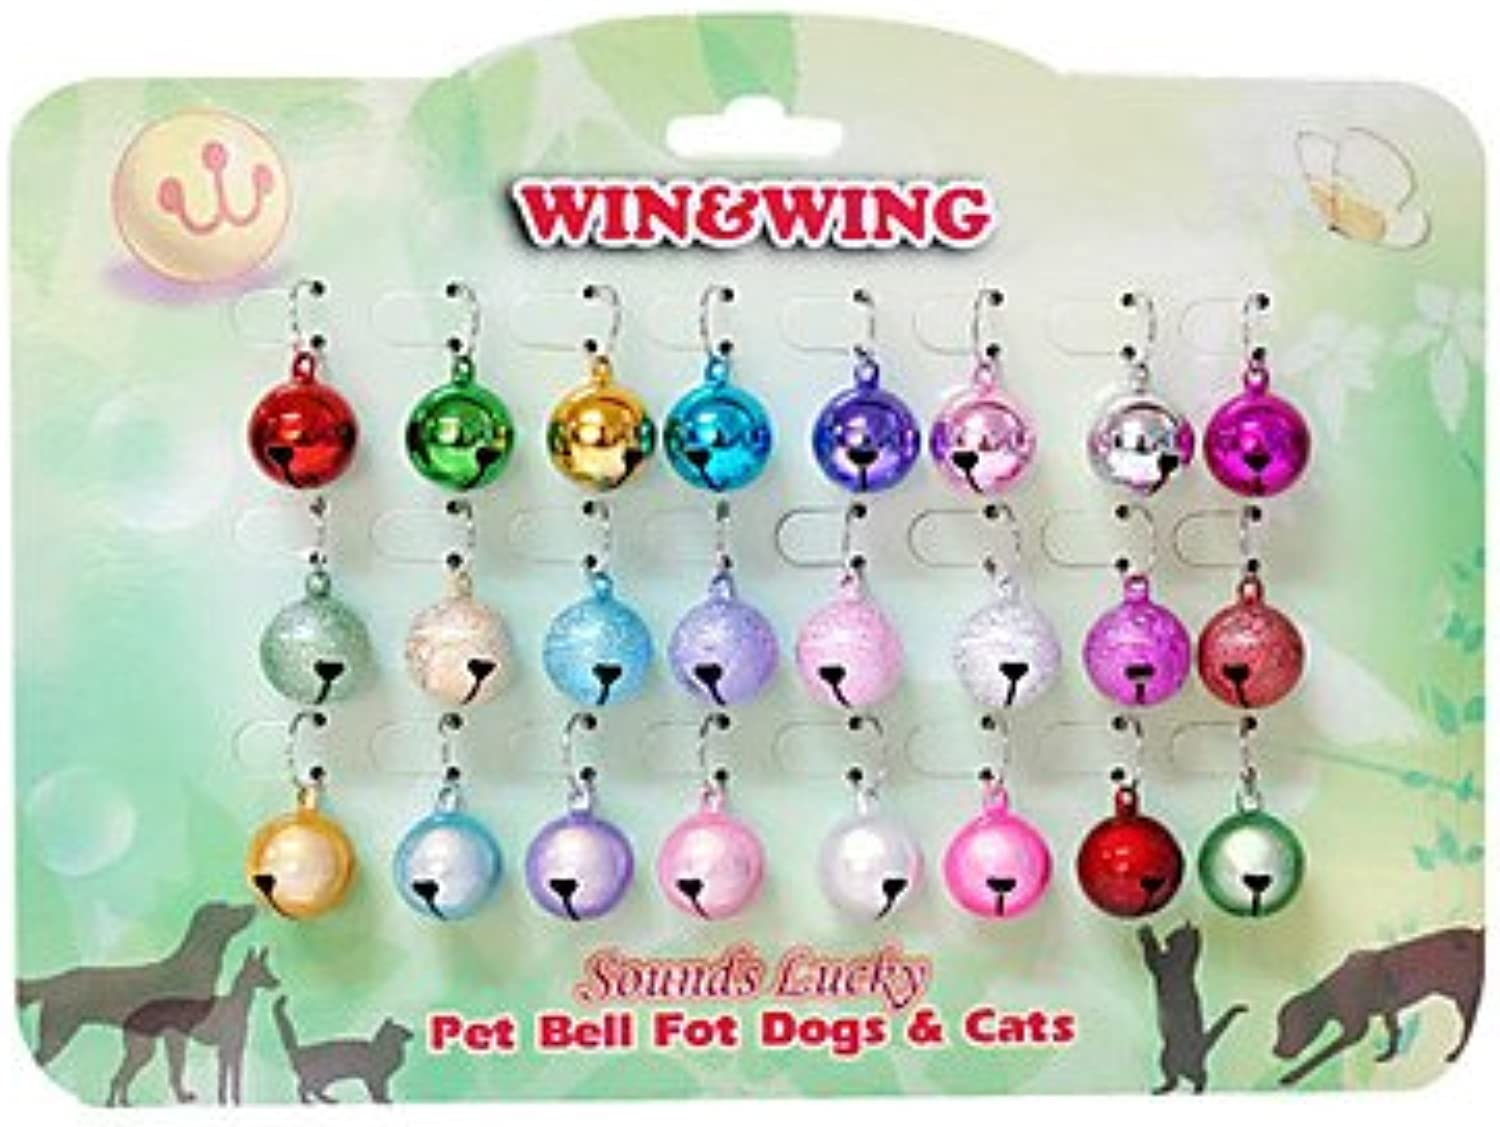 Quick shopping 20mm Onelinehollowed Copper Pet Bell for Pets Dogs Cats (24Piece)